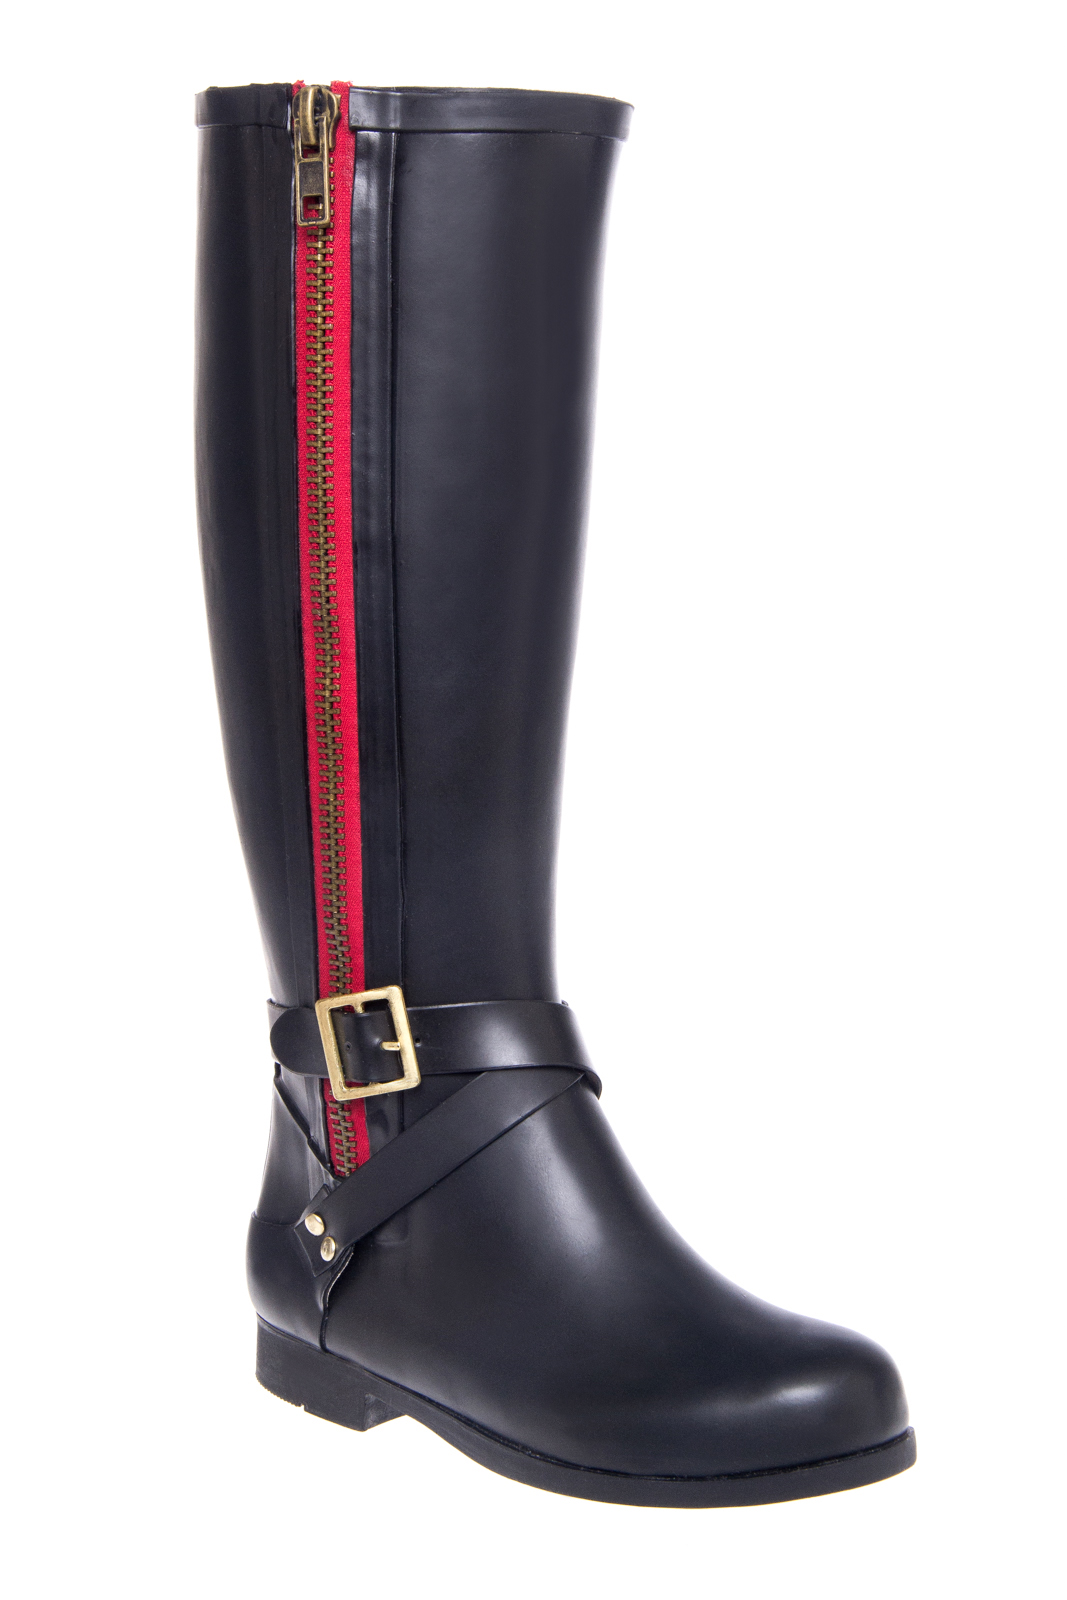 DNA Footwear Monsoon Mid-calf Rain Boots - Black